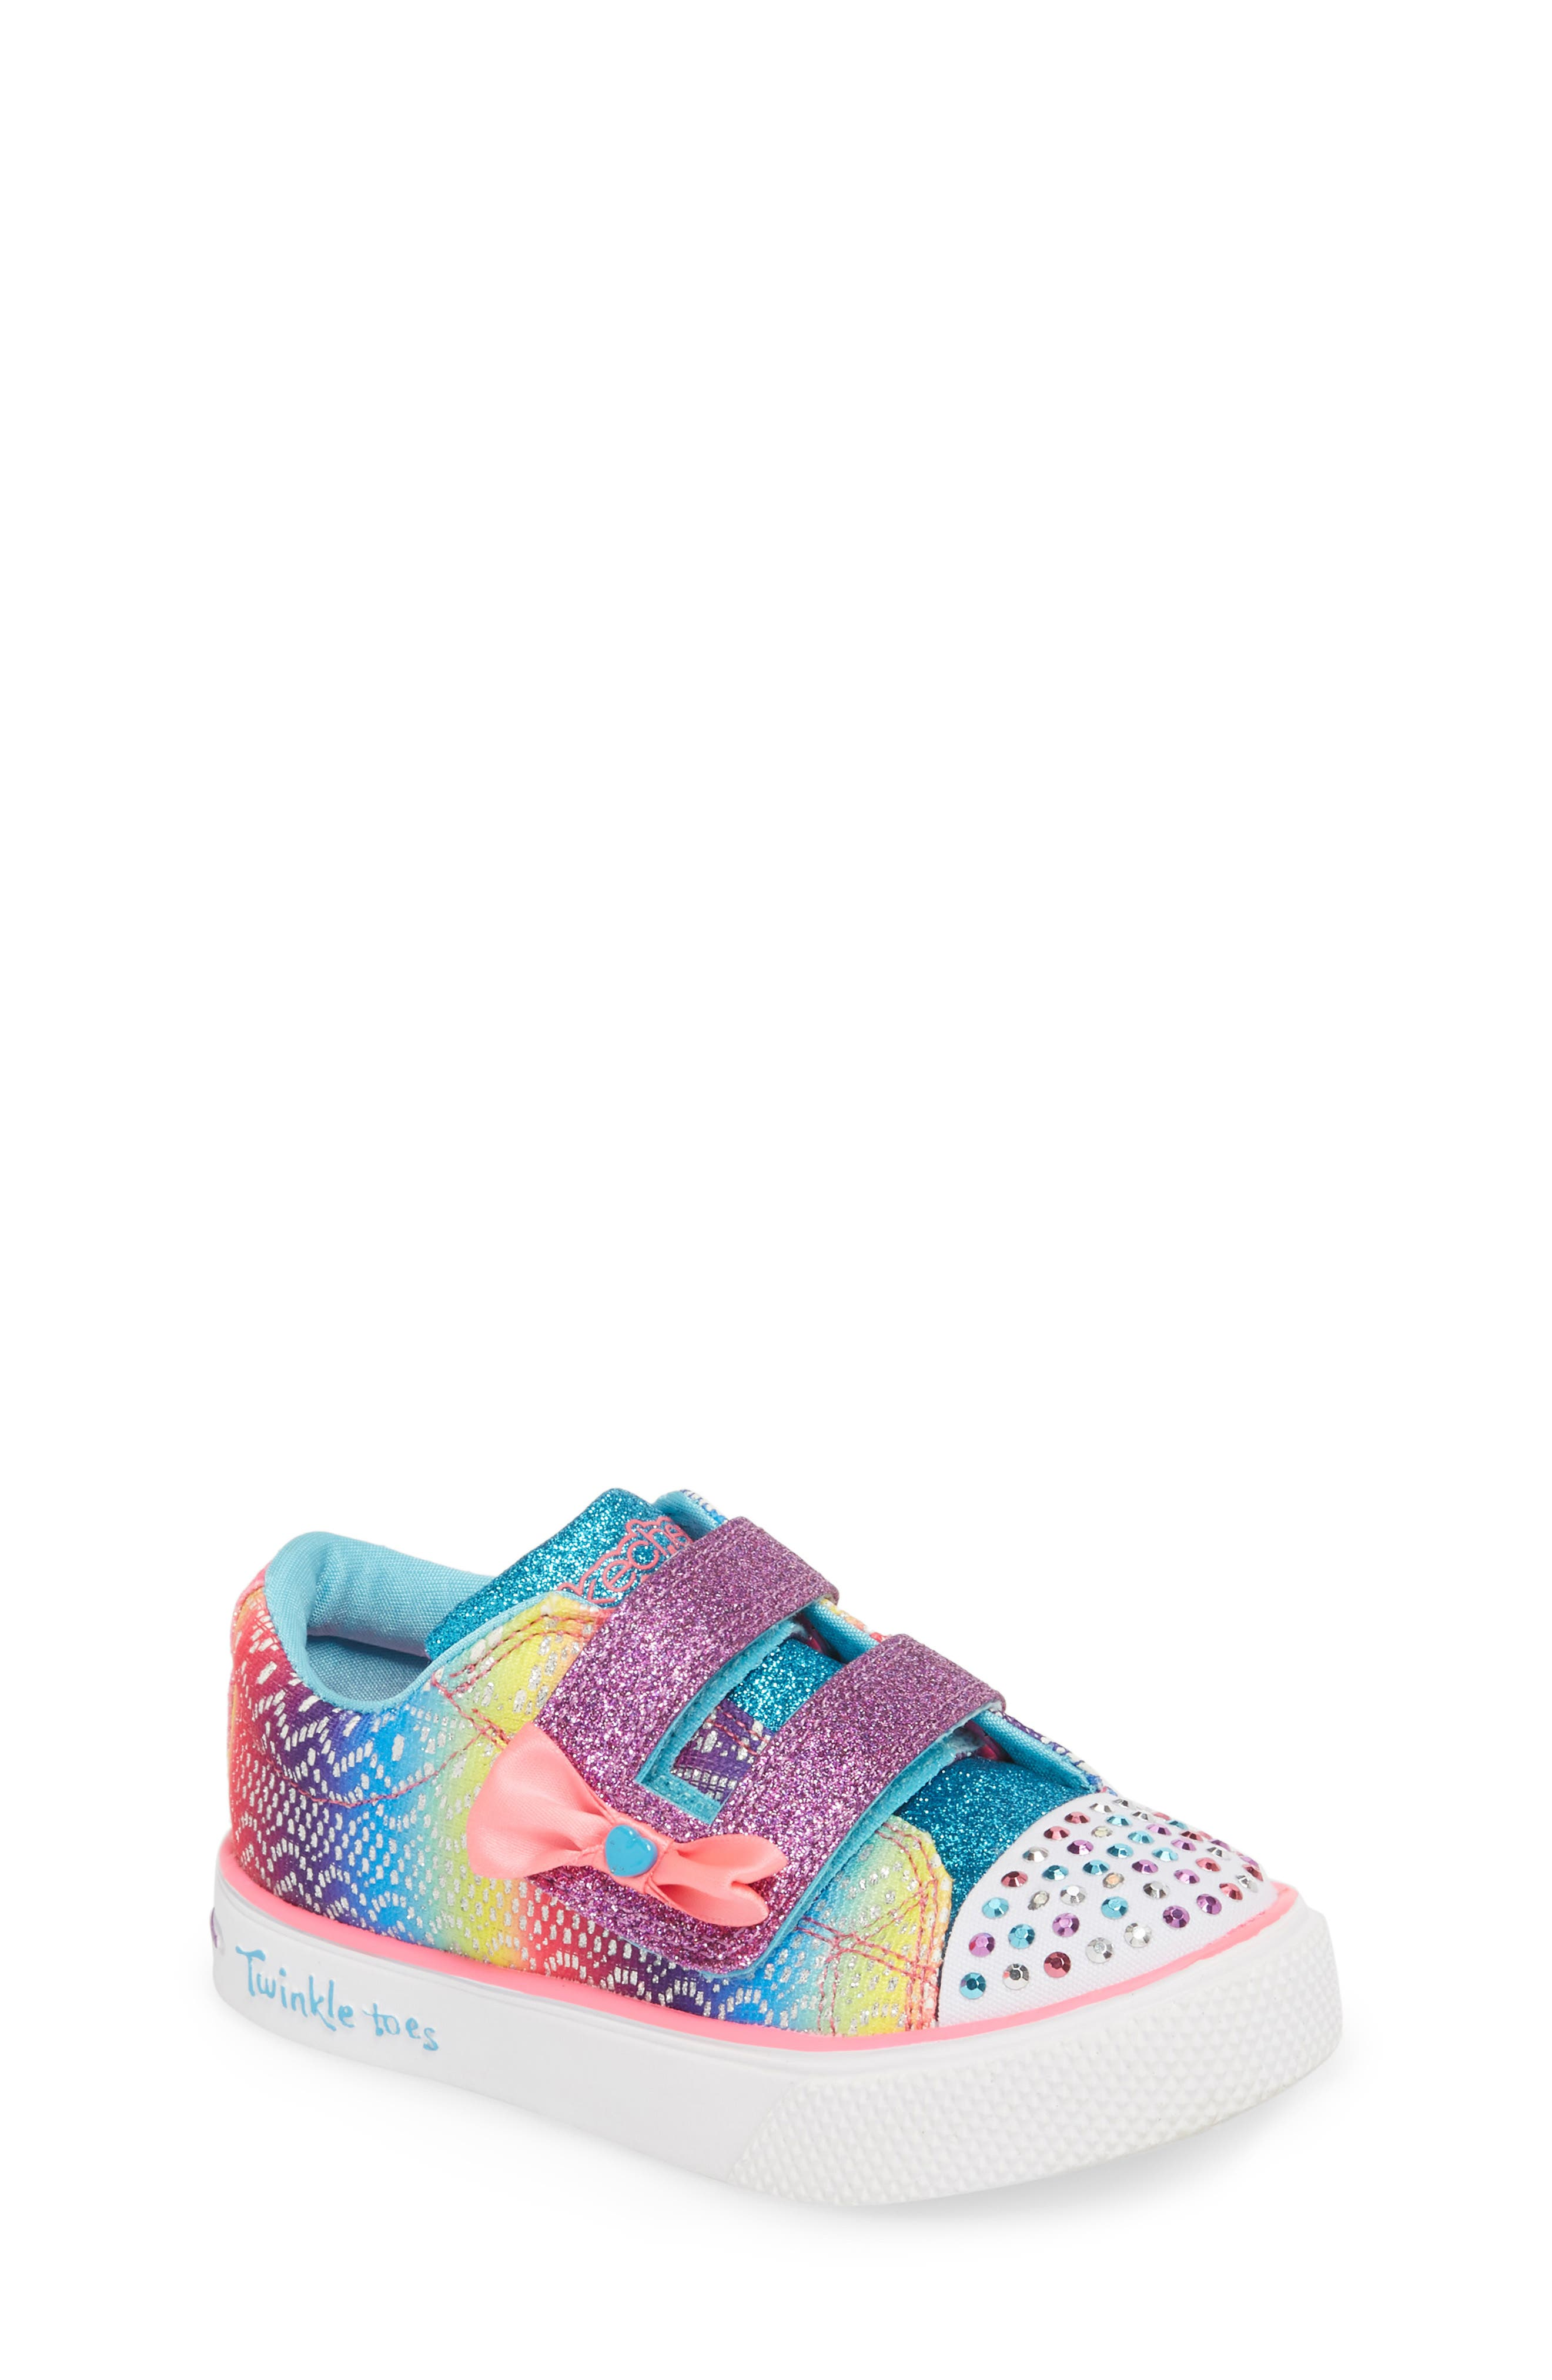 Twinkle Toes Breeze 2.0 Light-Up Sneaker,                             Main thumbnail 1, color,                             Multi